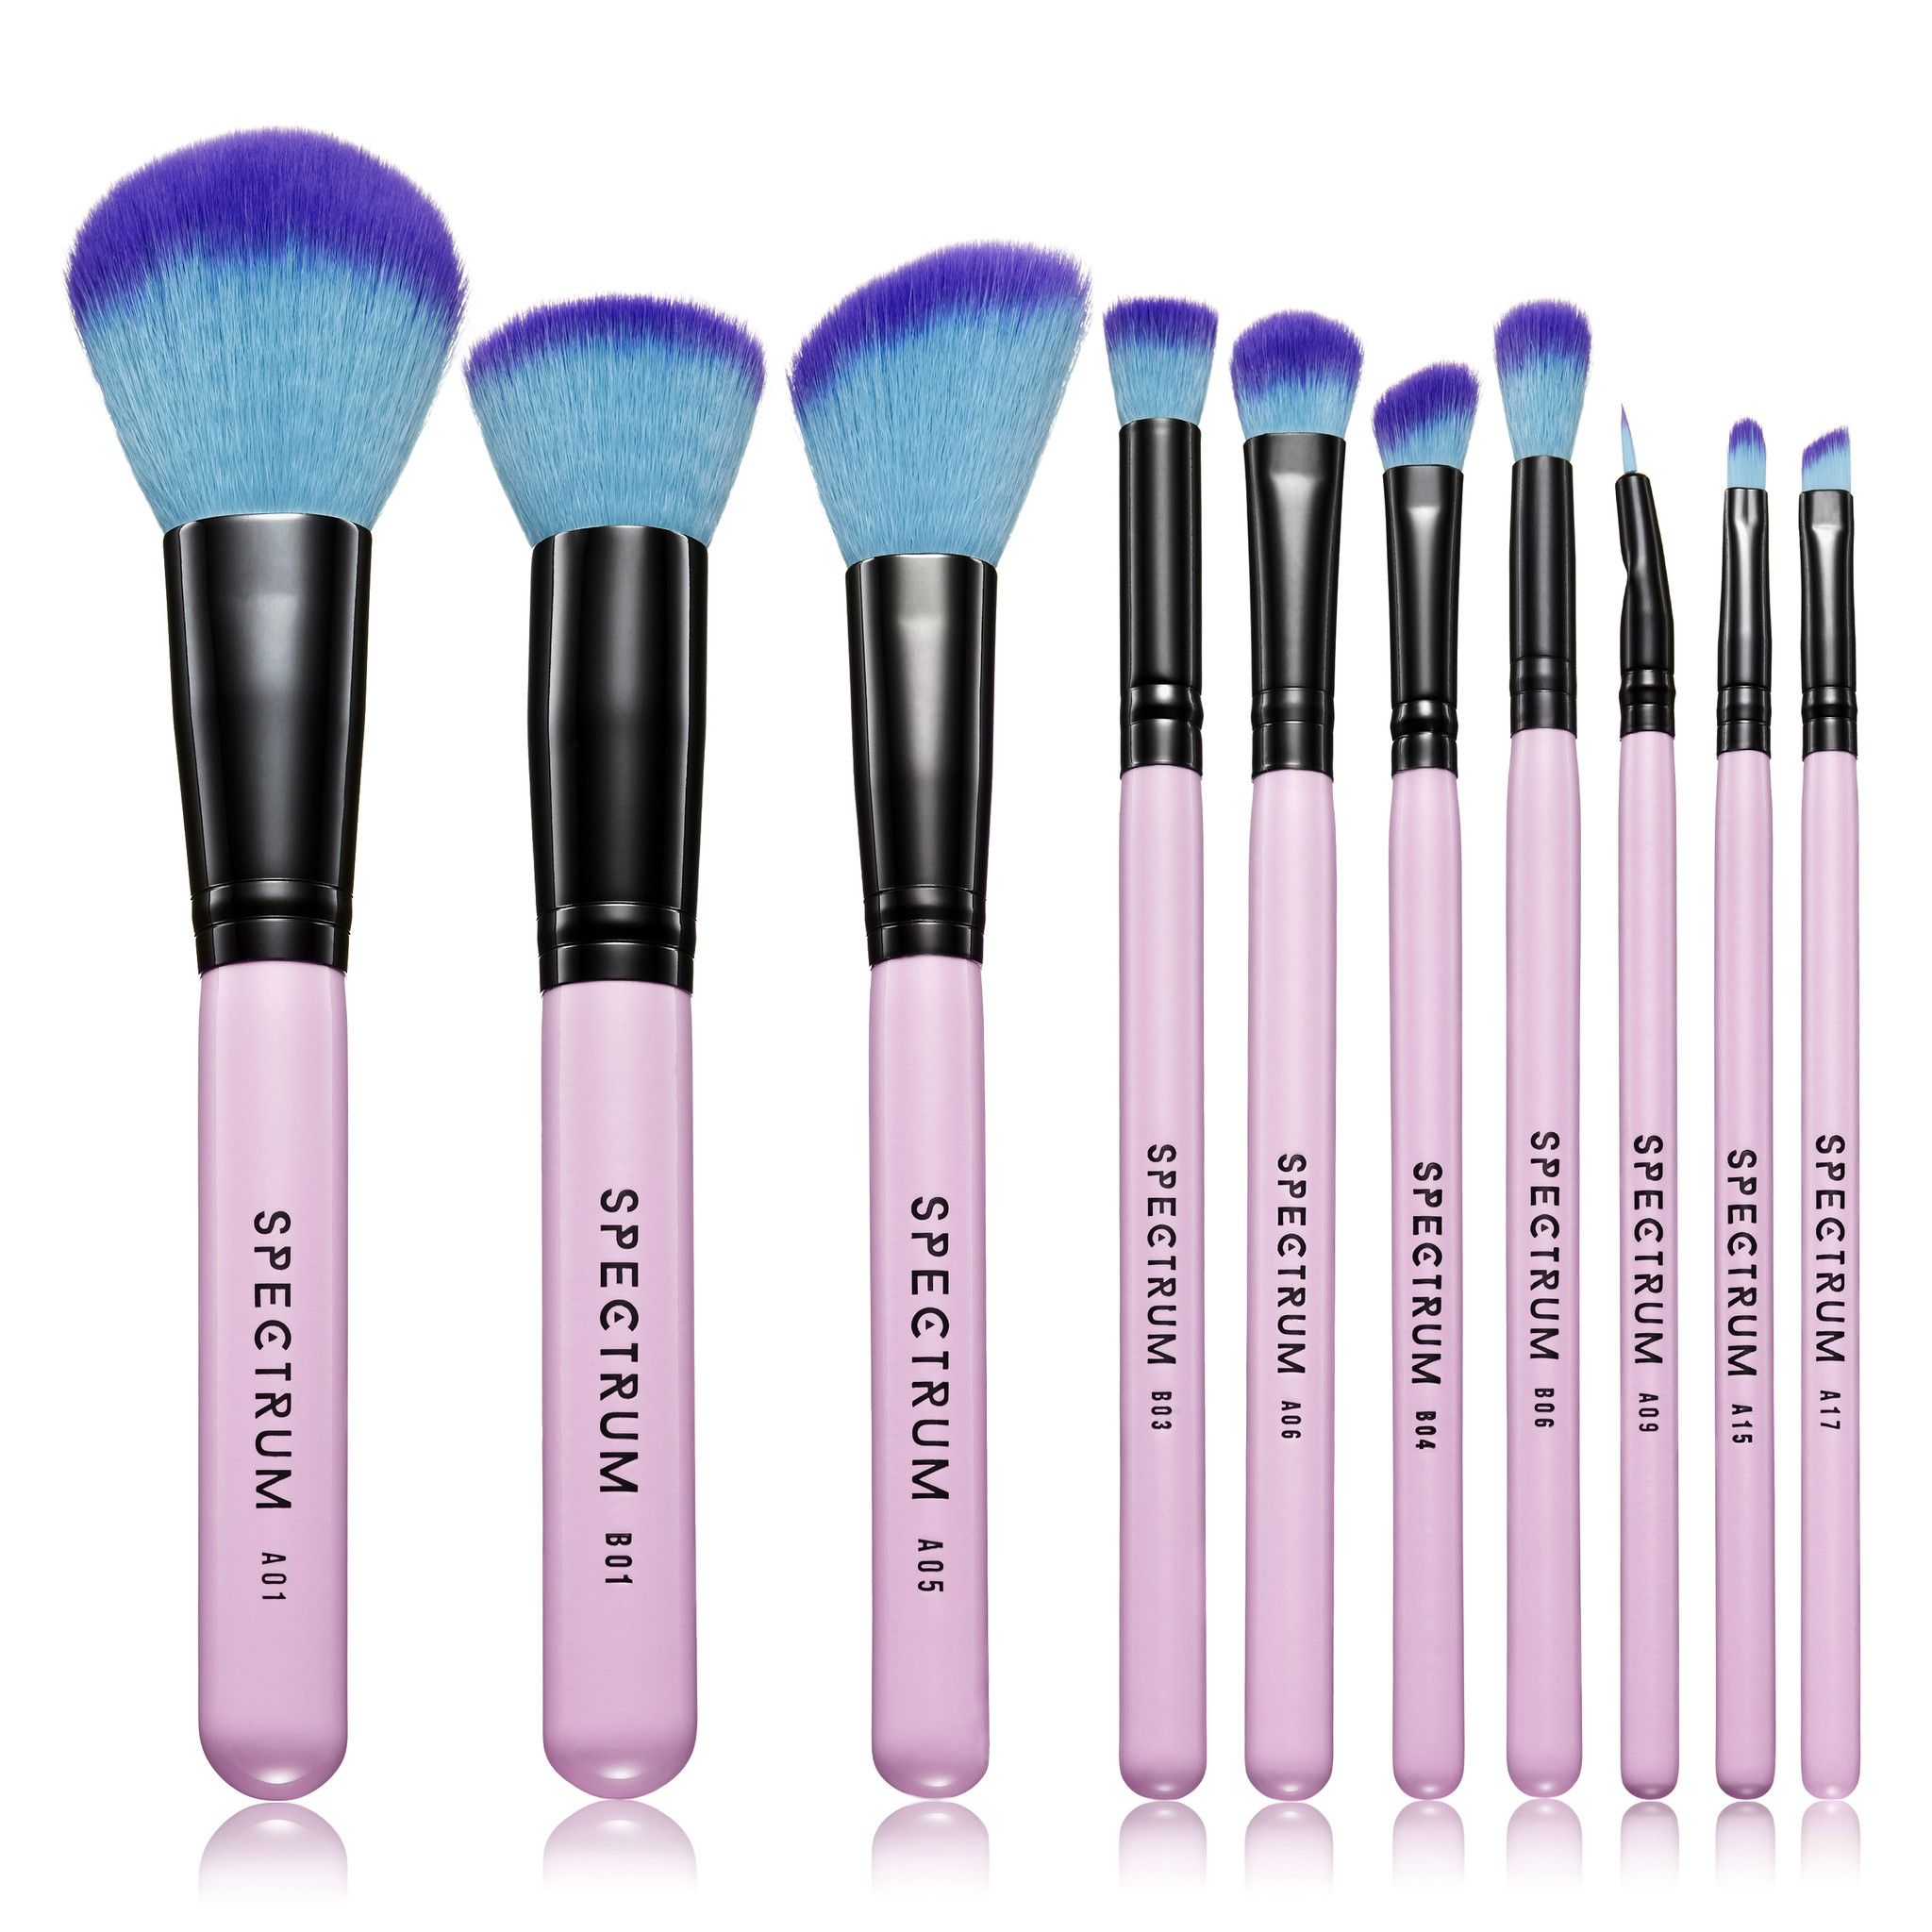 Inspired By Gabxxrielle Ombré Jouercosmetics Essential: Makeup Brush Set, It Cosmetics